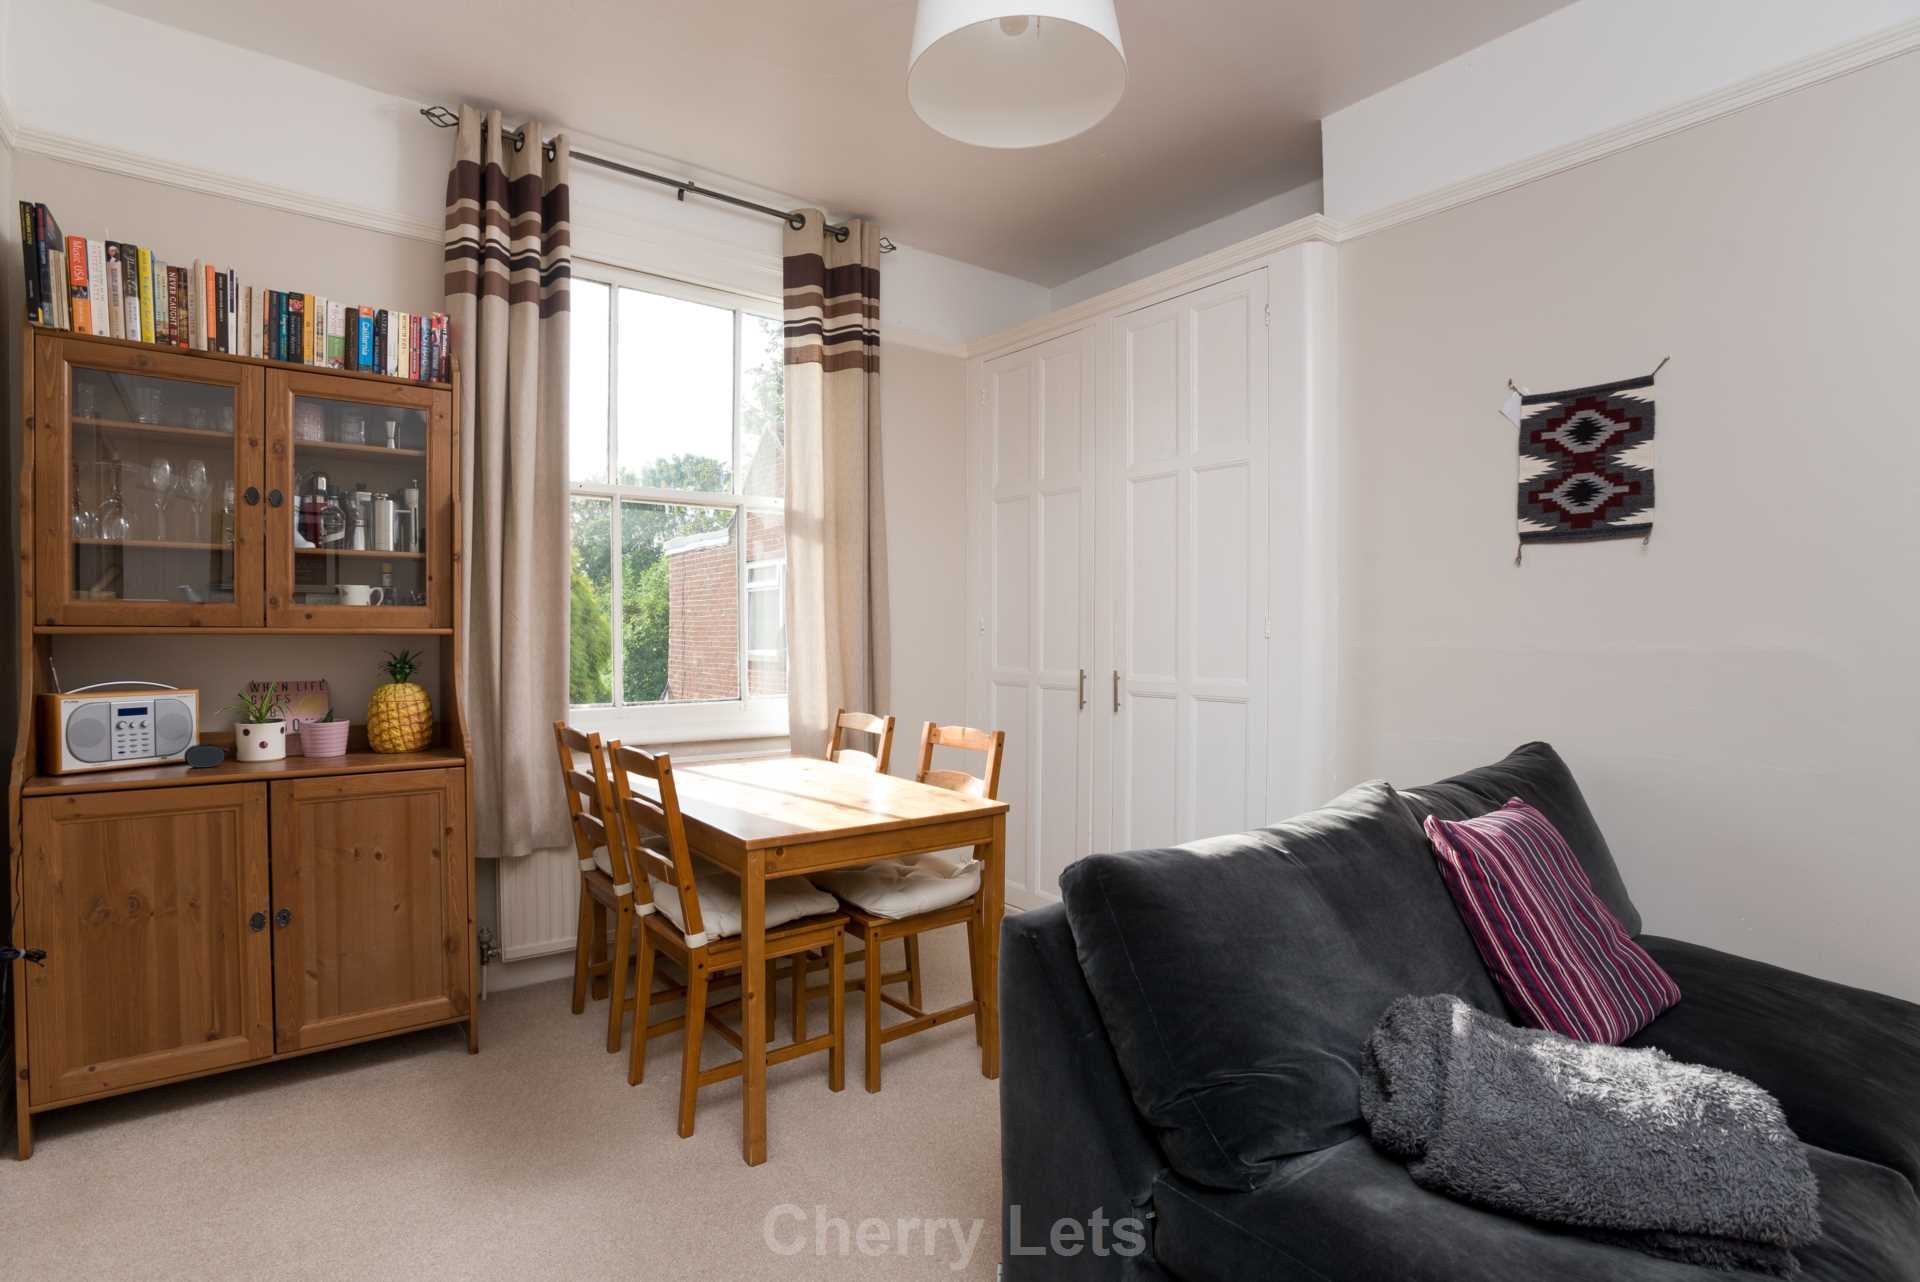 1 bed flat to rent in Bloxham Road, Banbury, OX16  - Property Image 5